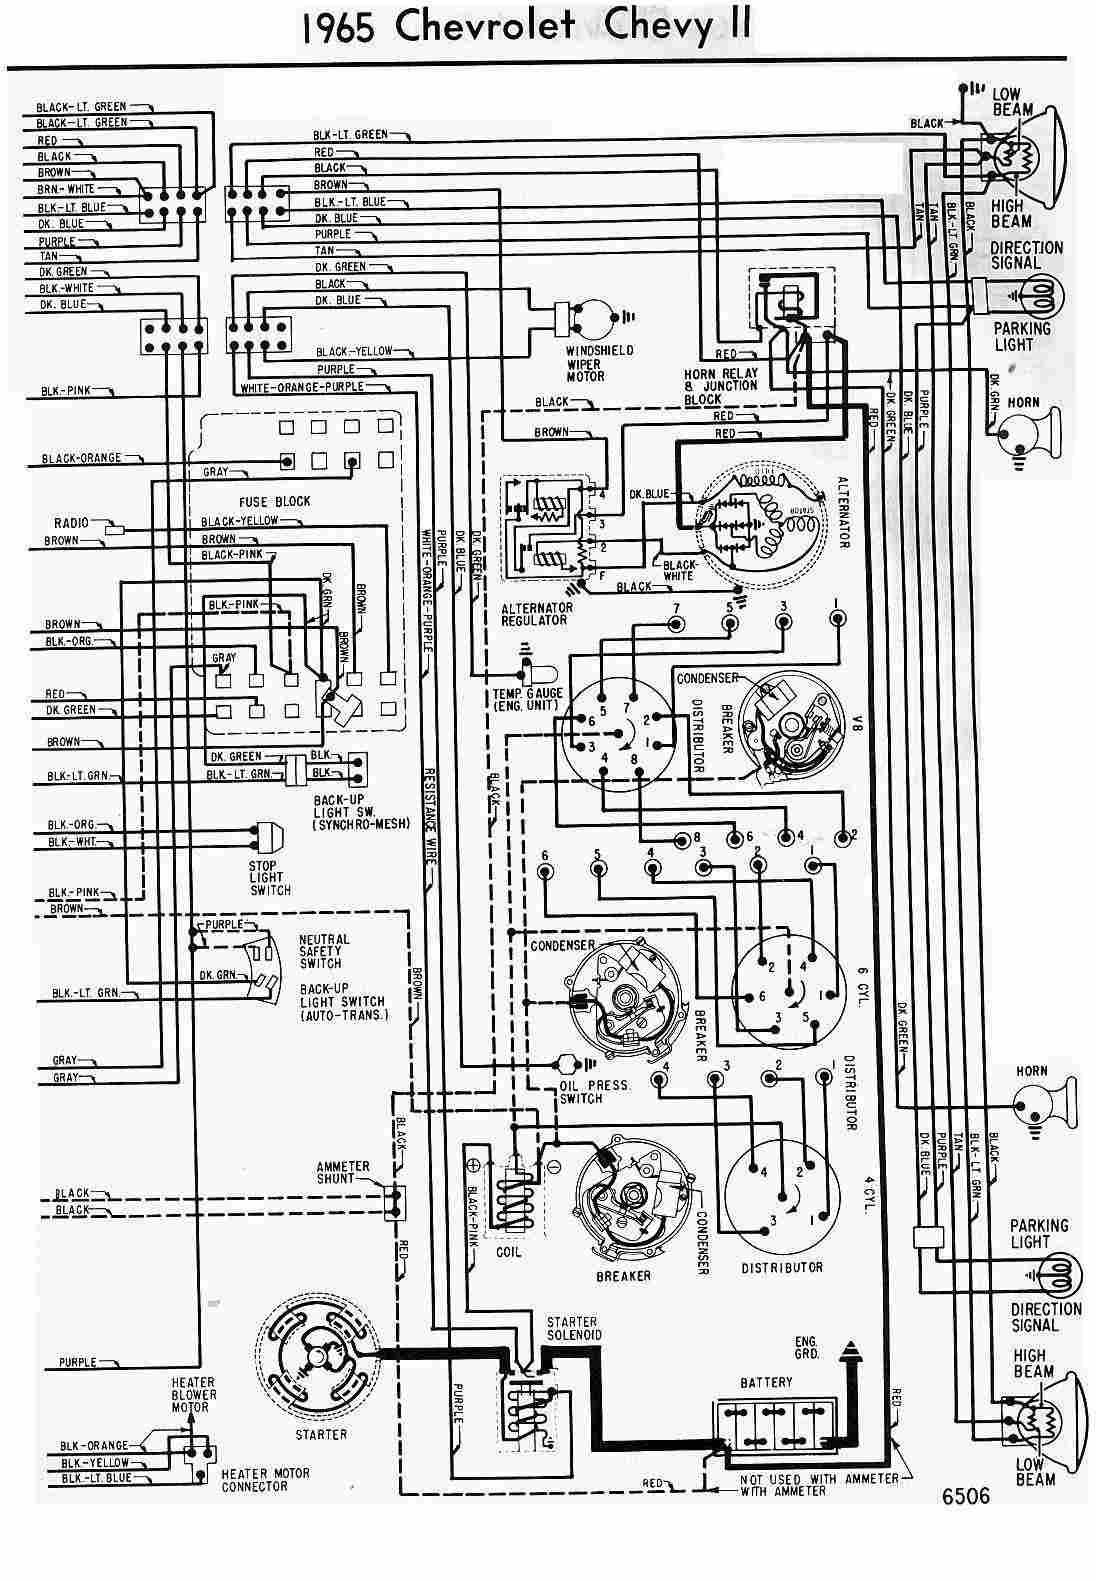 [SCHEMATICS_48EU]  CHEVROLET - Car PDF Manual, Wiring Diagram & Fault Codes DTC | 1966 Corvette Wiring Diagram Pdf |  | automotive-manuals.net